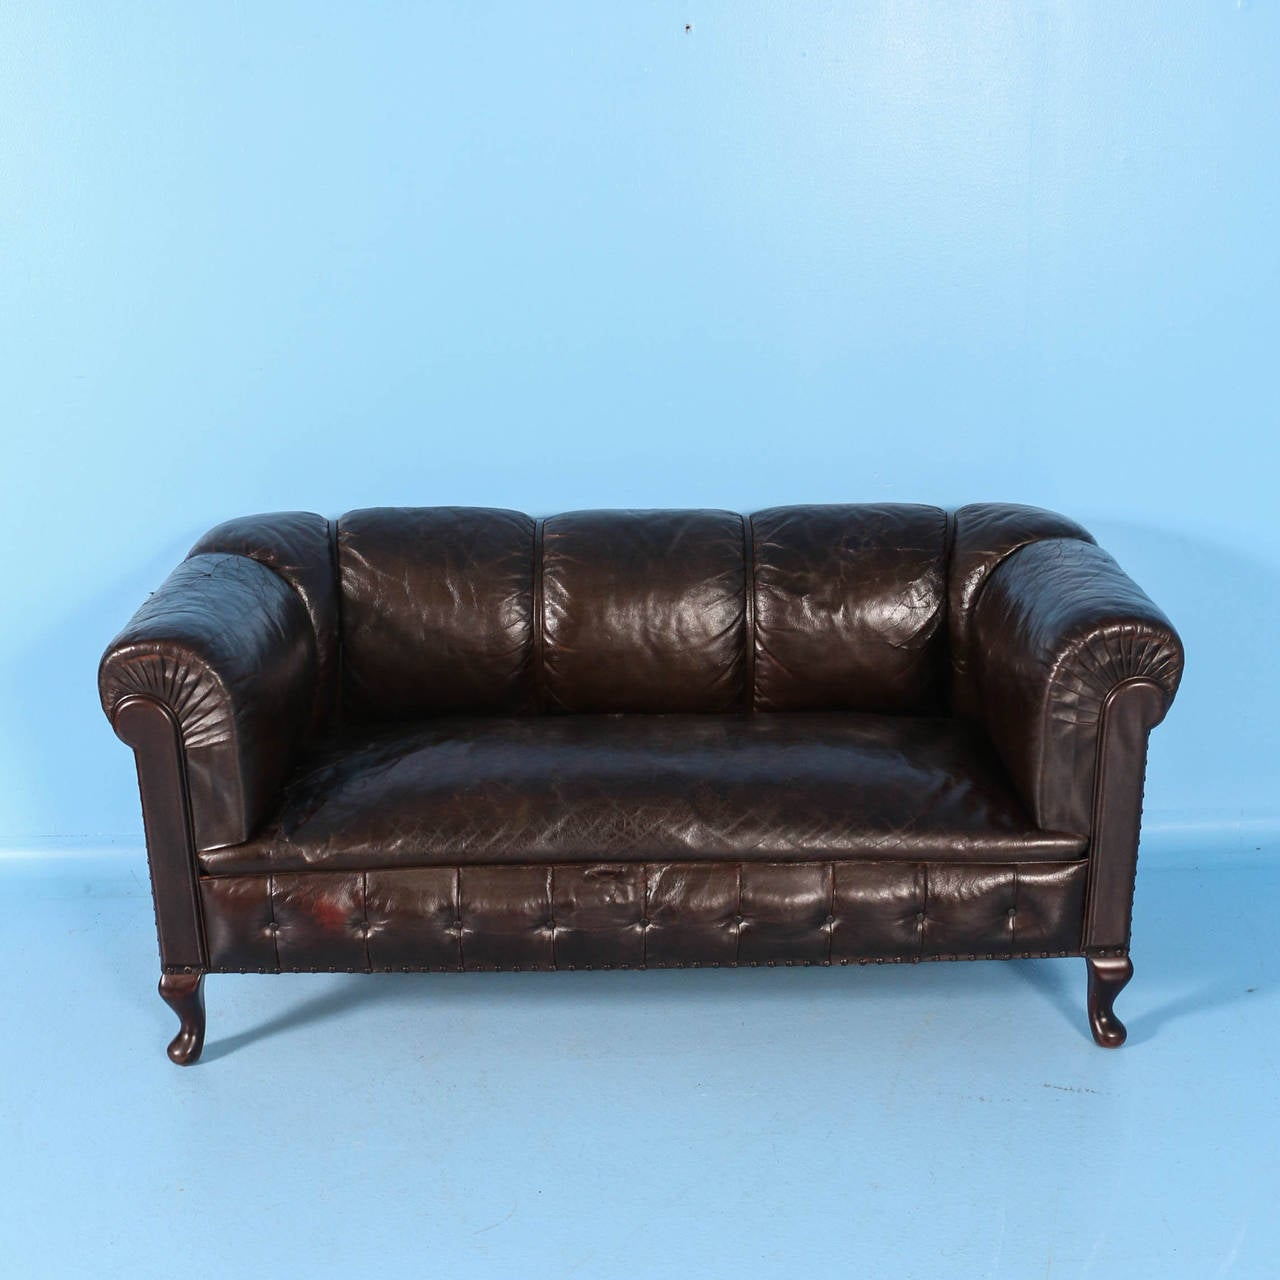 Blue leather chesterfield sofa at 1stdibs - Small Vintage Chesterfield Sofa England Circa 1920 1940 2